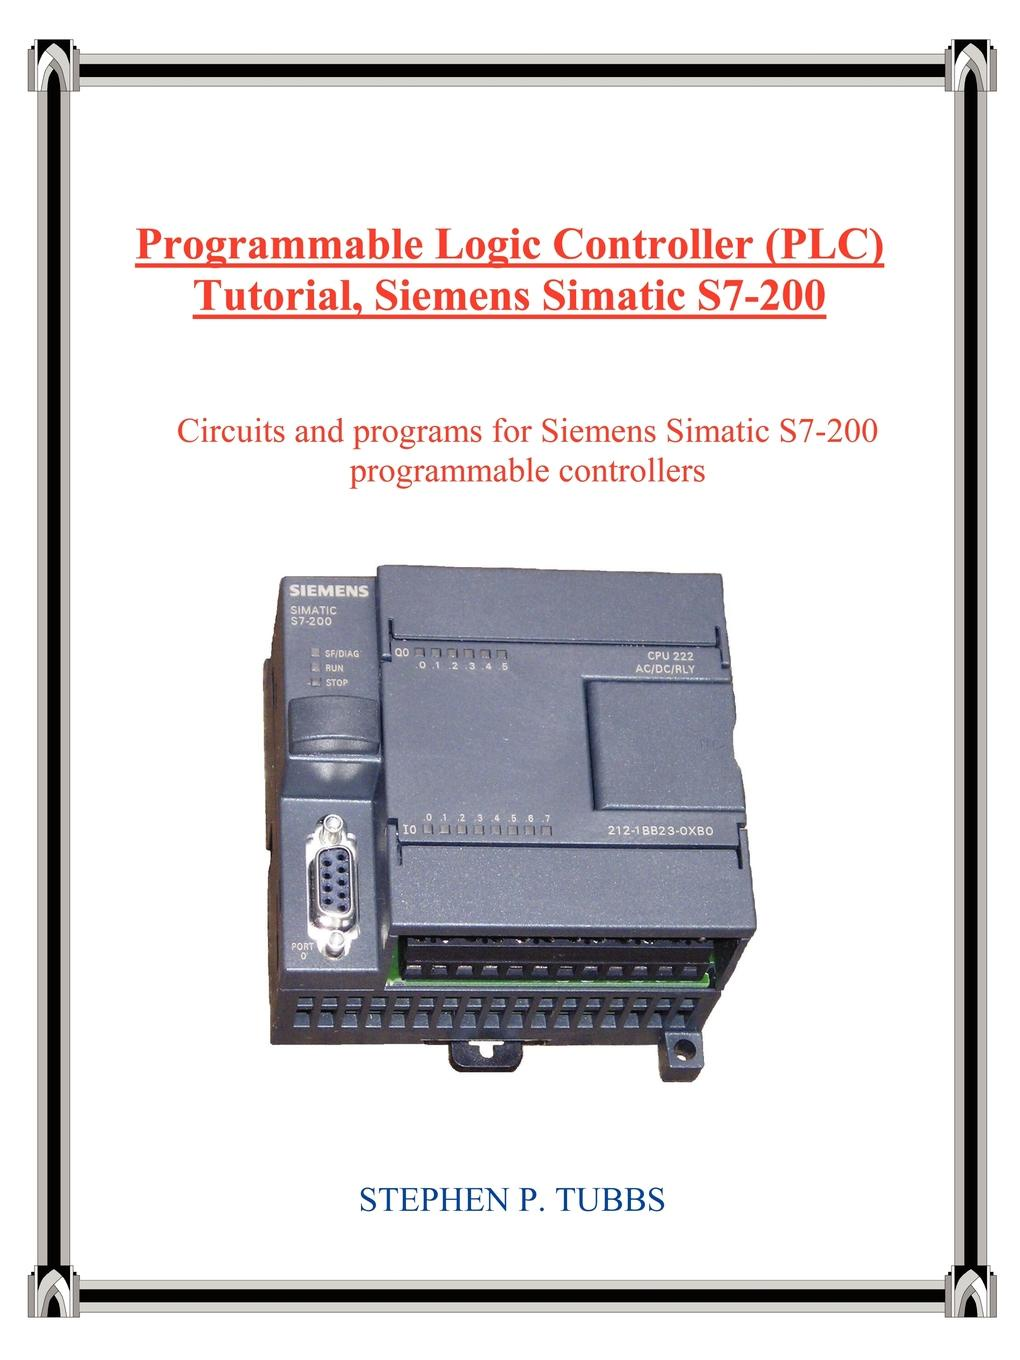 Stephen P. Tubbs Programmable Logic Controller (Plc) Tutorial, Siemens Simatic S7-200 цена